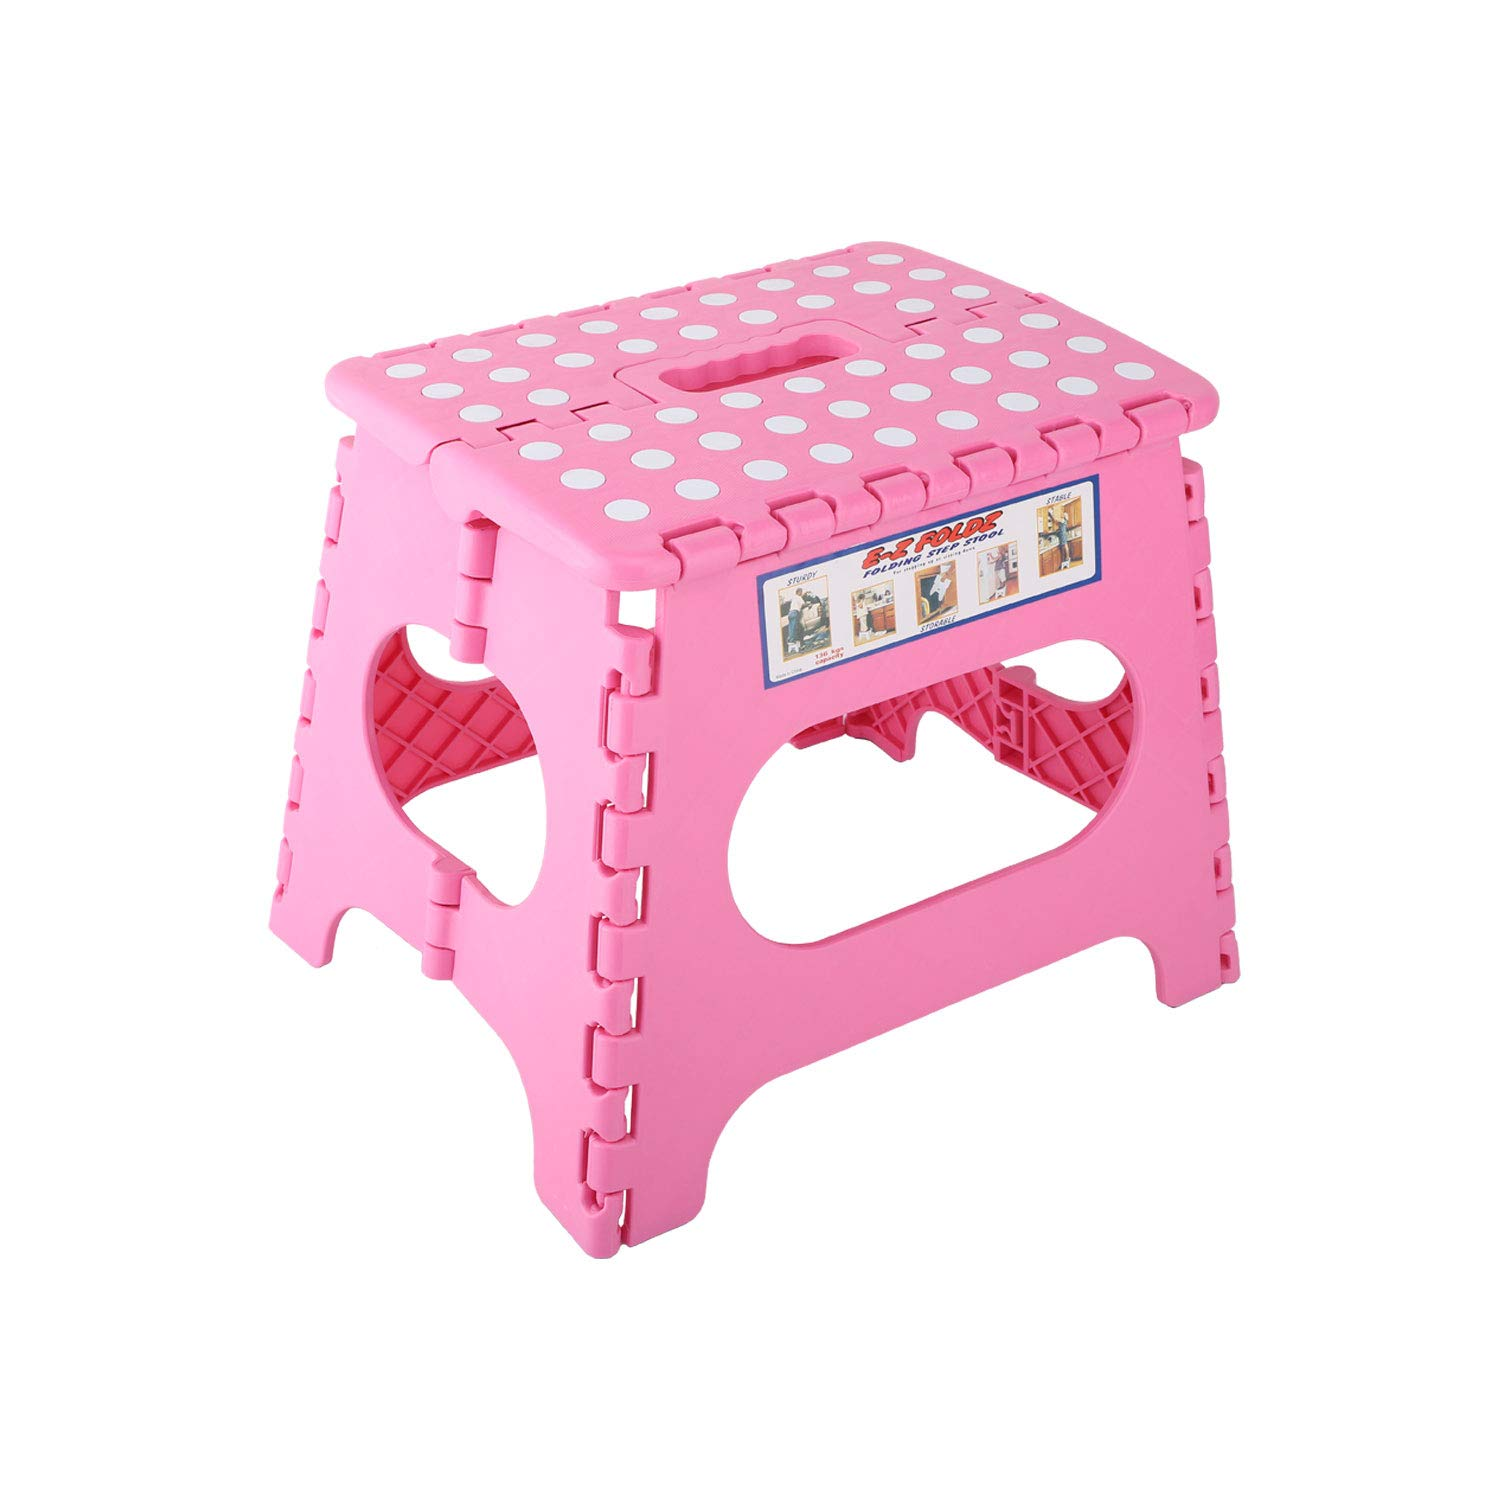 Kids Adults Use Portable Foldable Step Stool Compact Chair Seat with Non-Slip Surface for Home Bathroom Kitchen Garden etc Housolution Folding Stool Pink